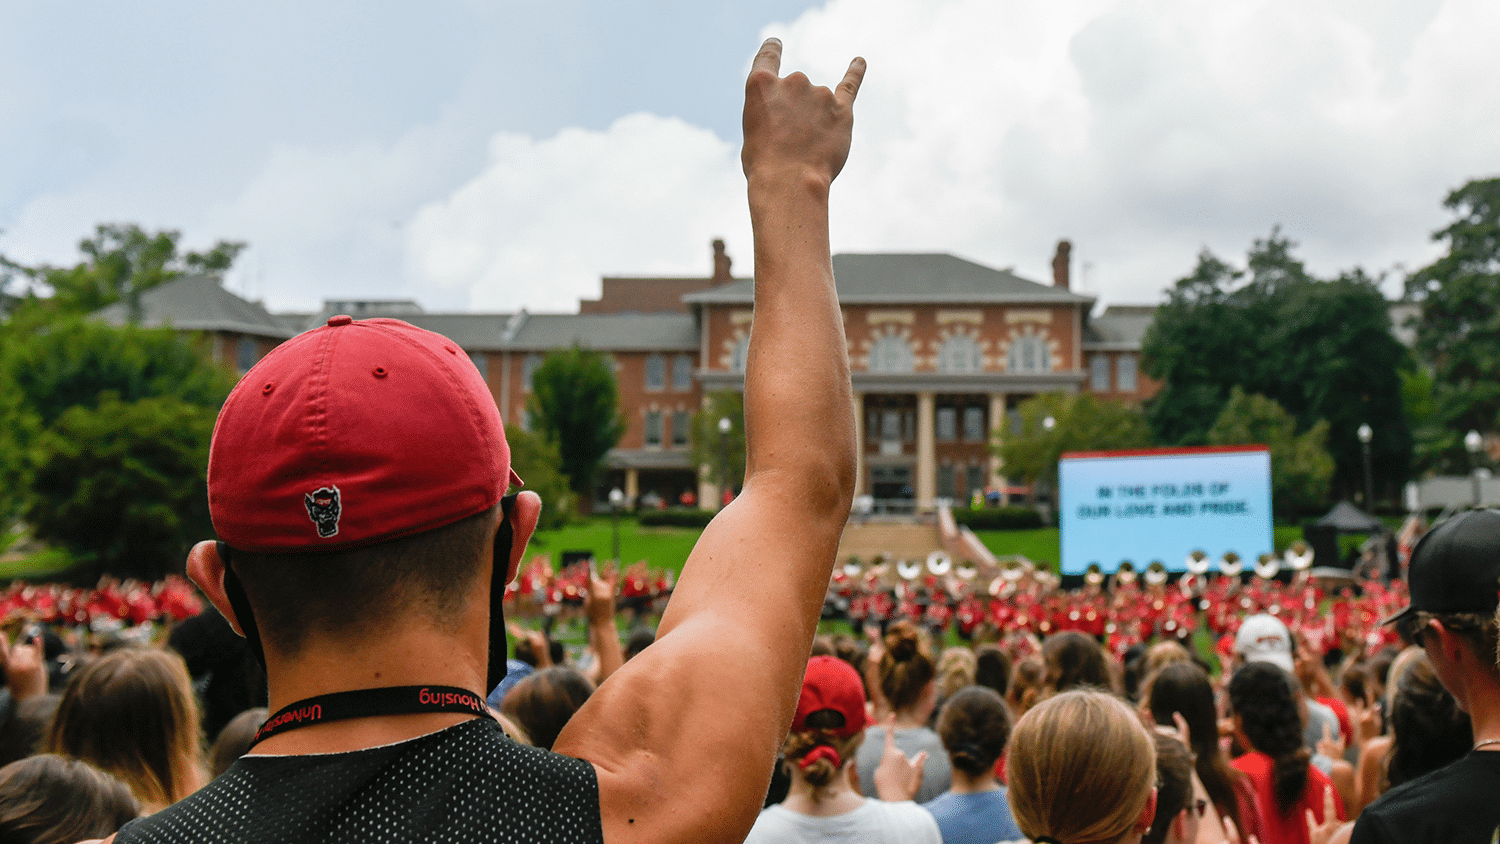 A student holds up wolf hands above a crowd.